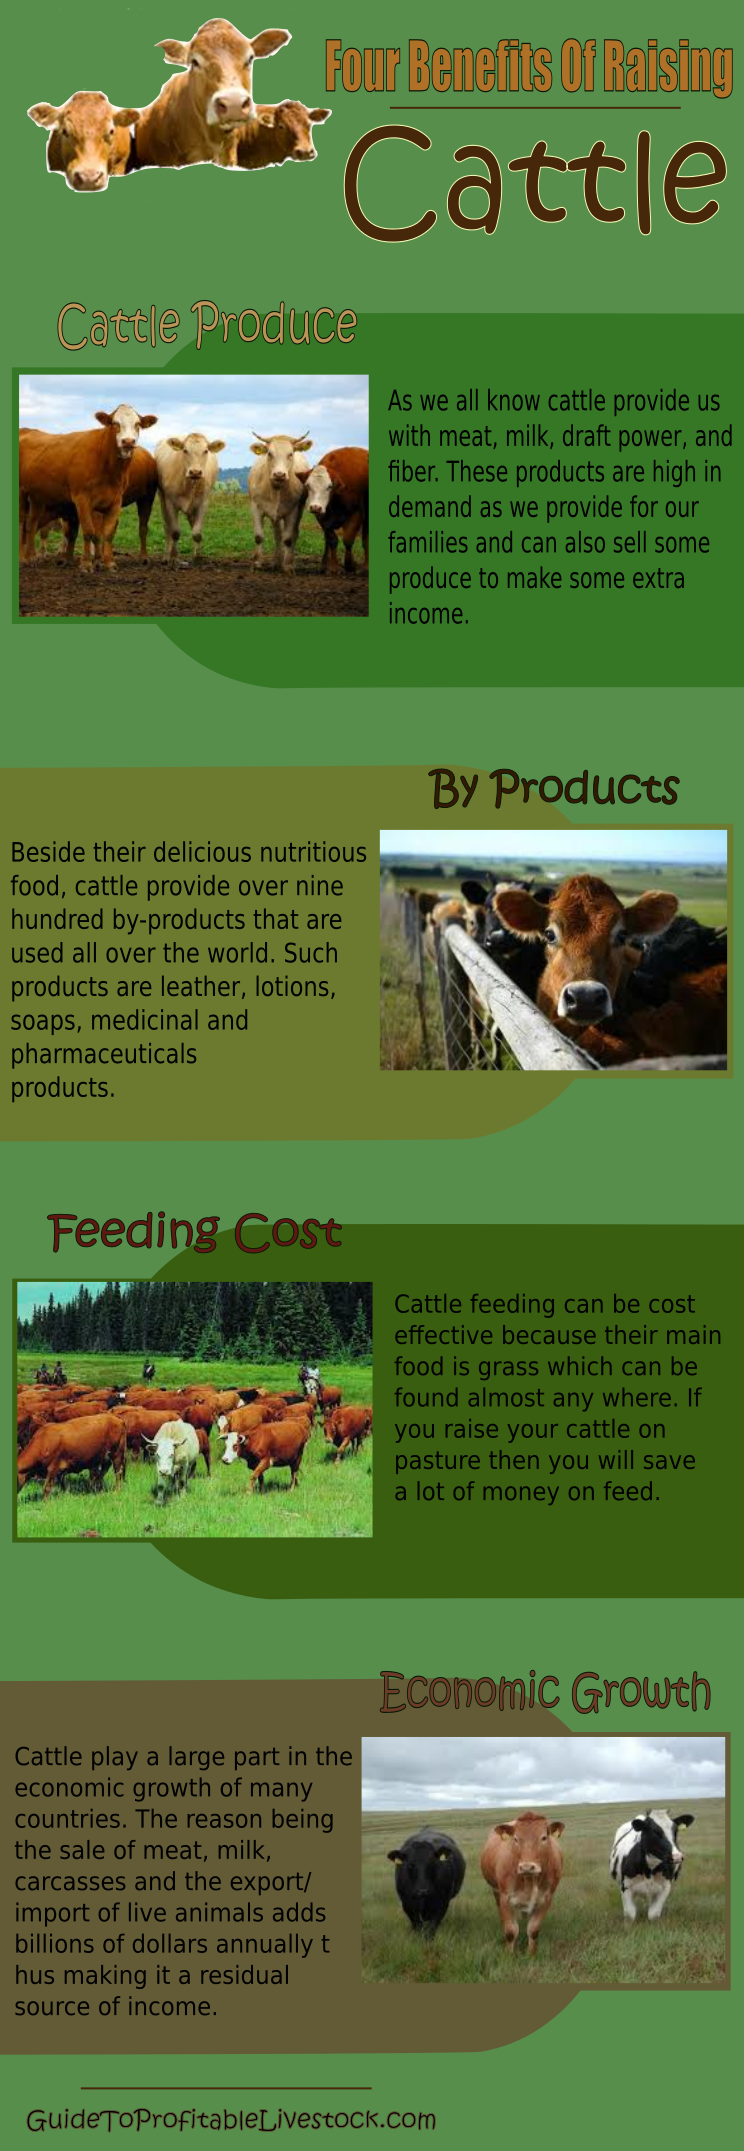 Four Benefits Of Raising Cattle